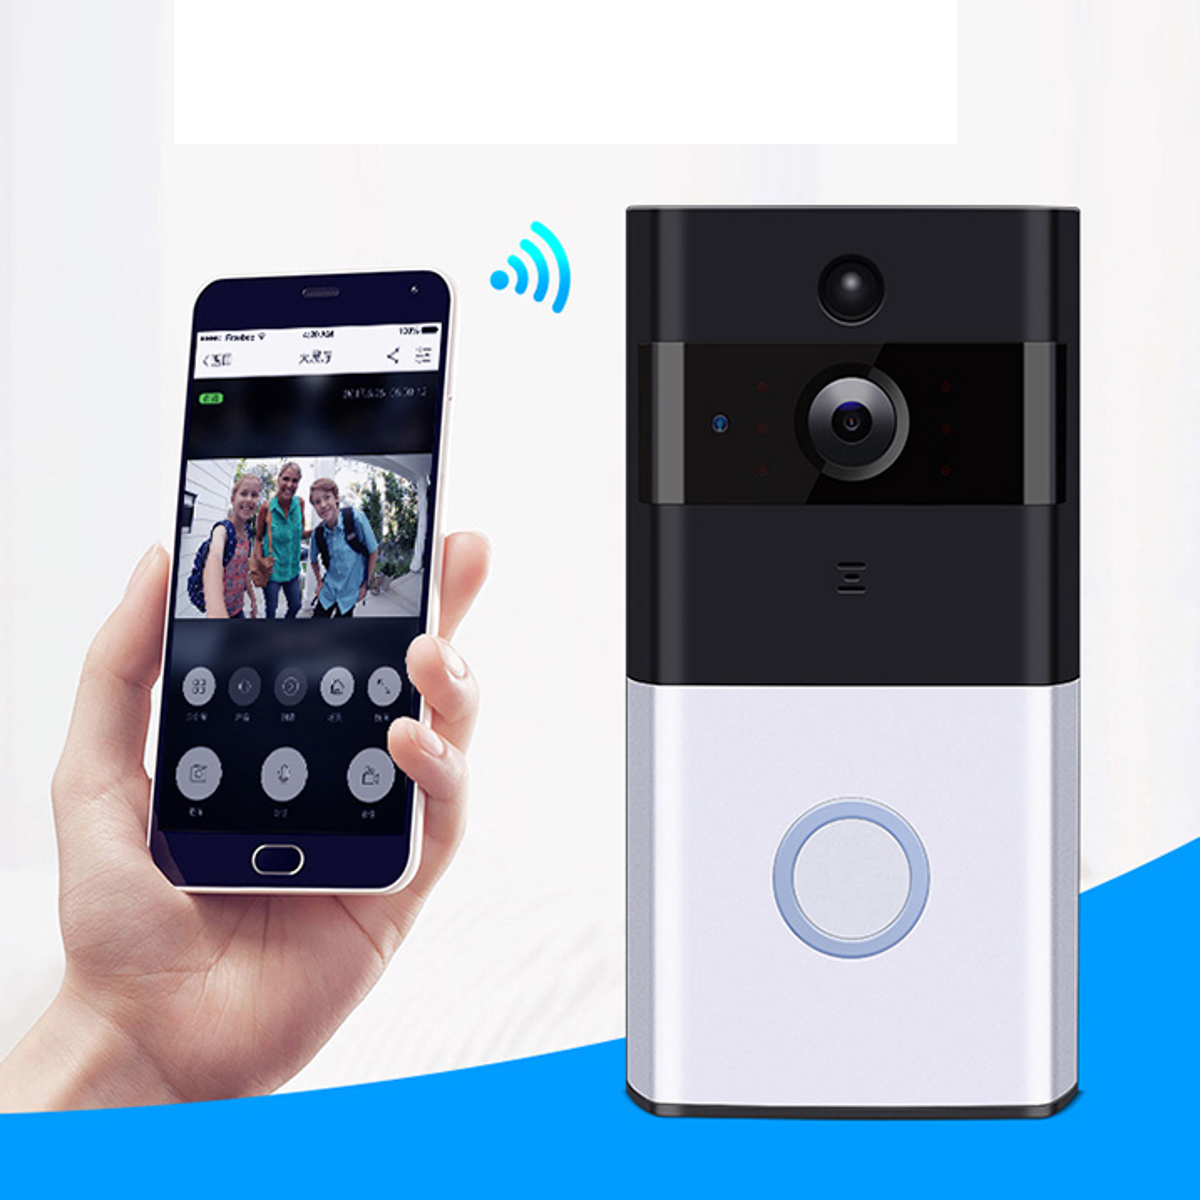 Wireless Battery WiFi Smart HD Video Doorbell Talk Night Vision Security App Control Home Applicance